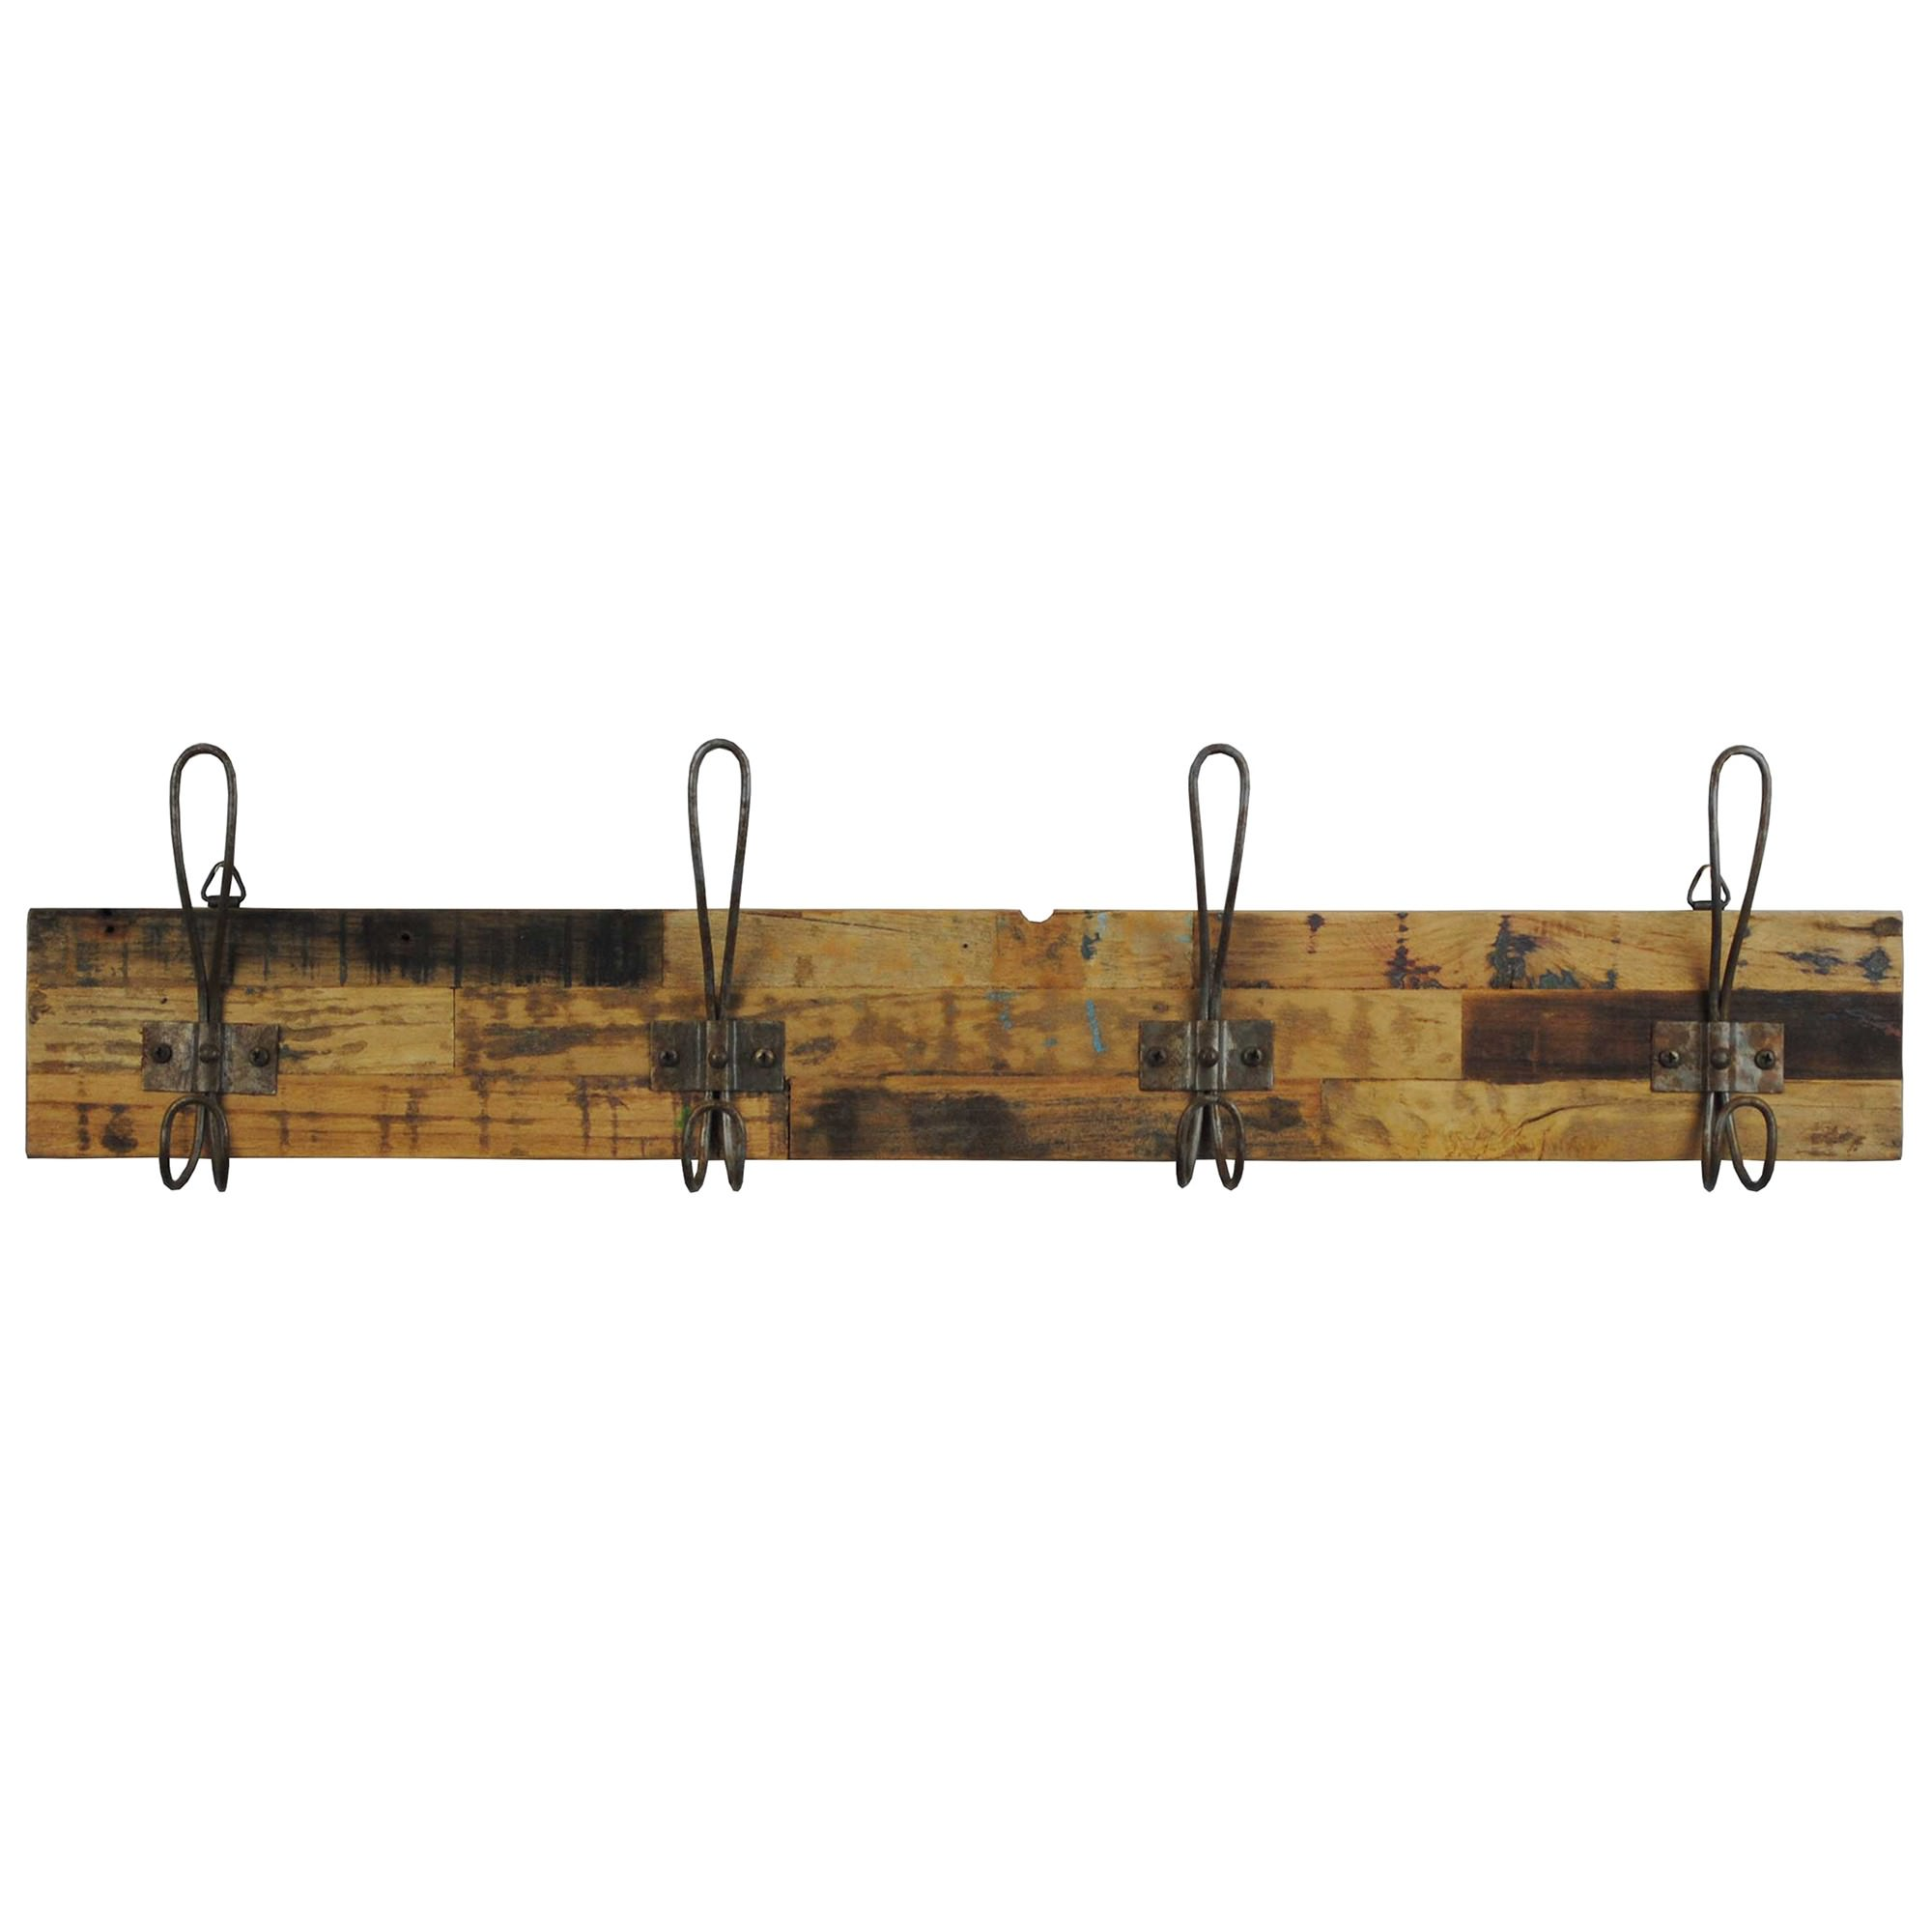 Perin Recycled Teak Timber & Metal Hanger, 4 Hook, Rustic Charcoal / Sandblasted Natural